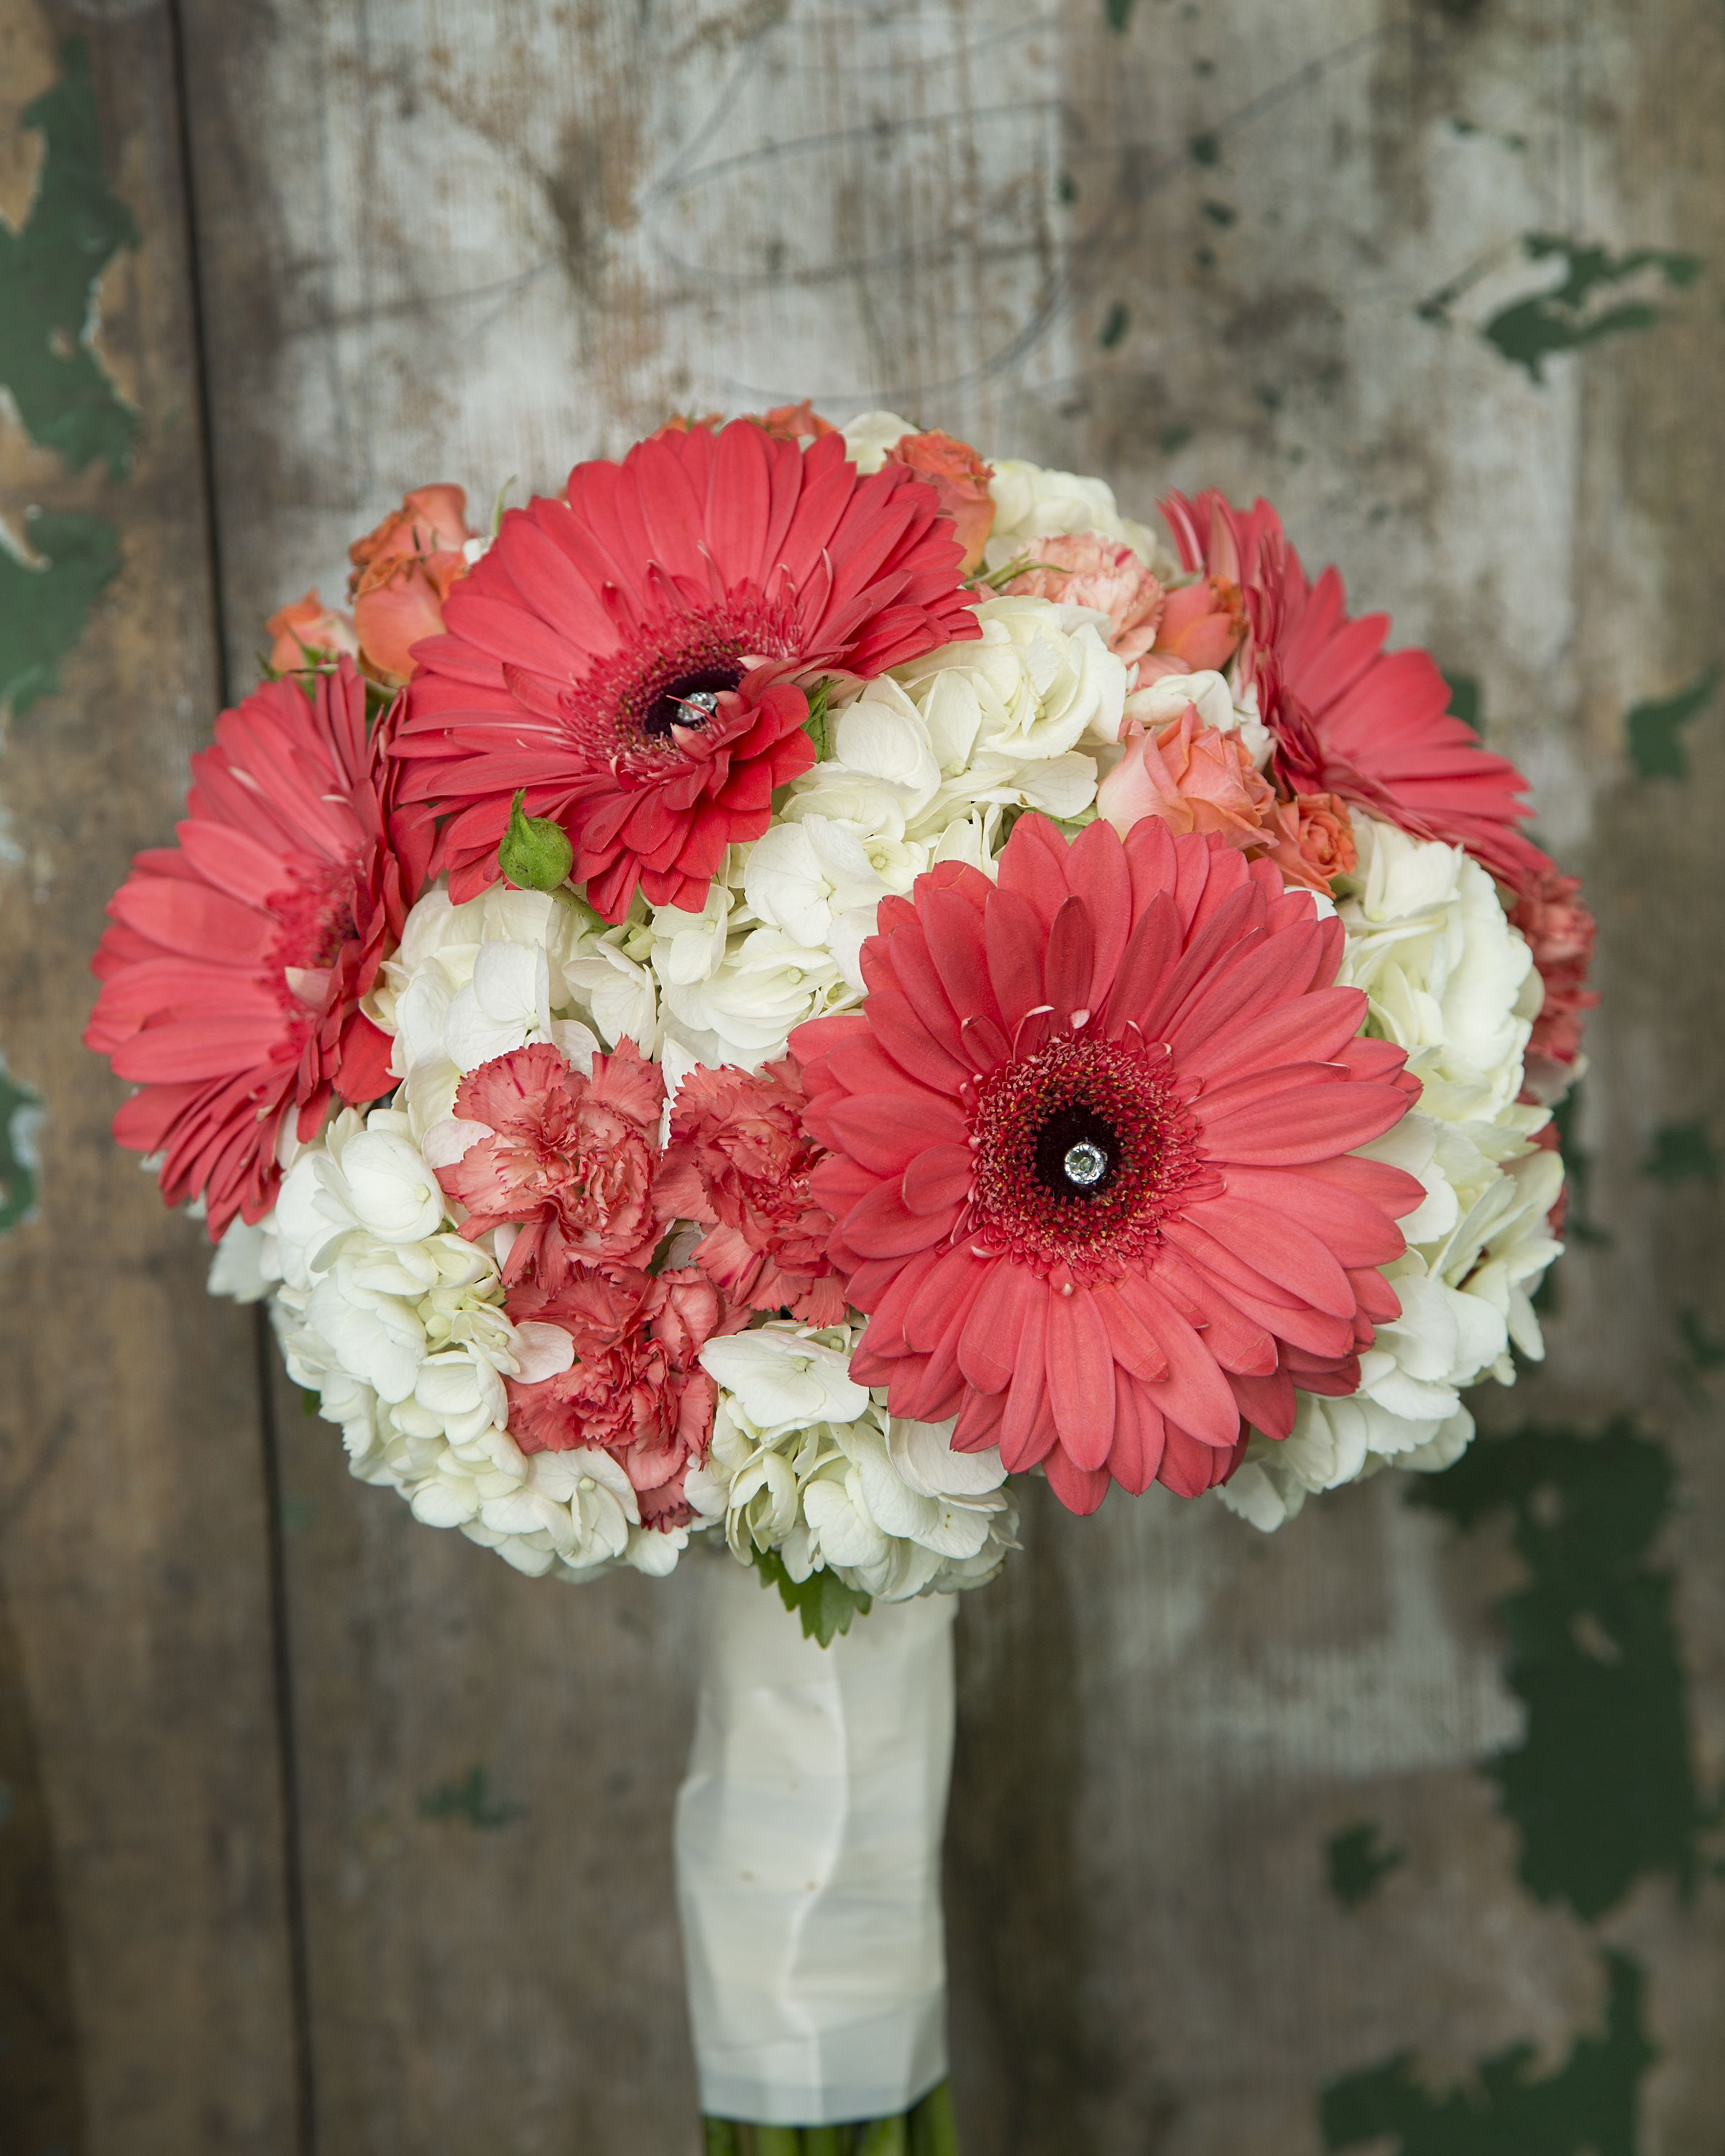 Wedding Bouquet Of Gerbera Daisies : Coral gerbera carnations and spray roses with a